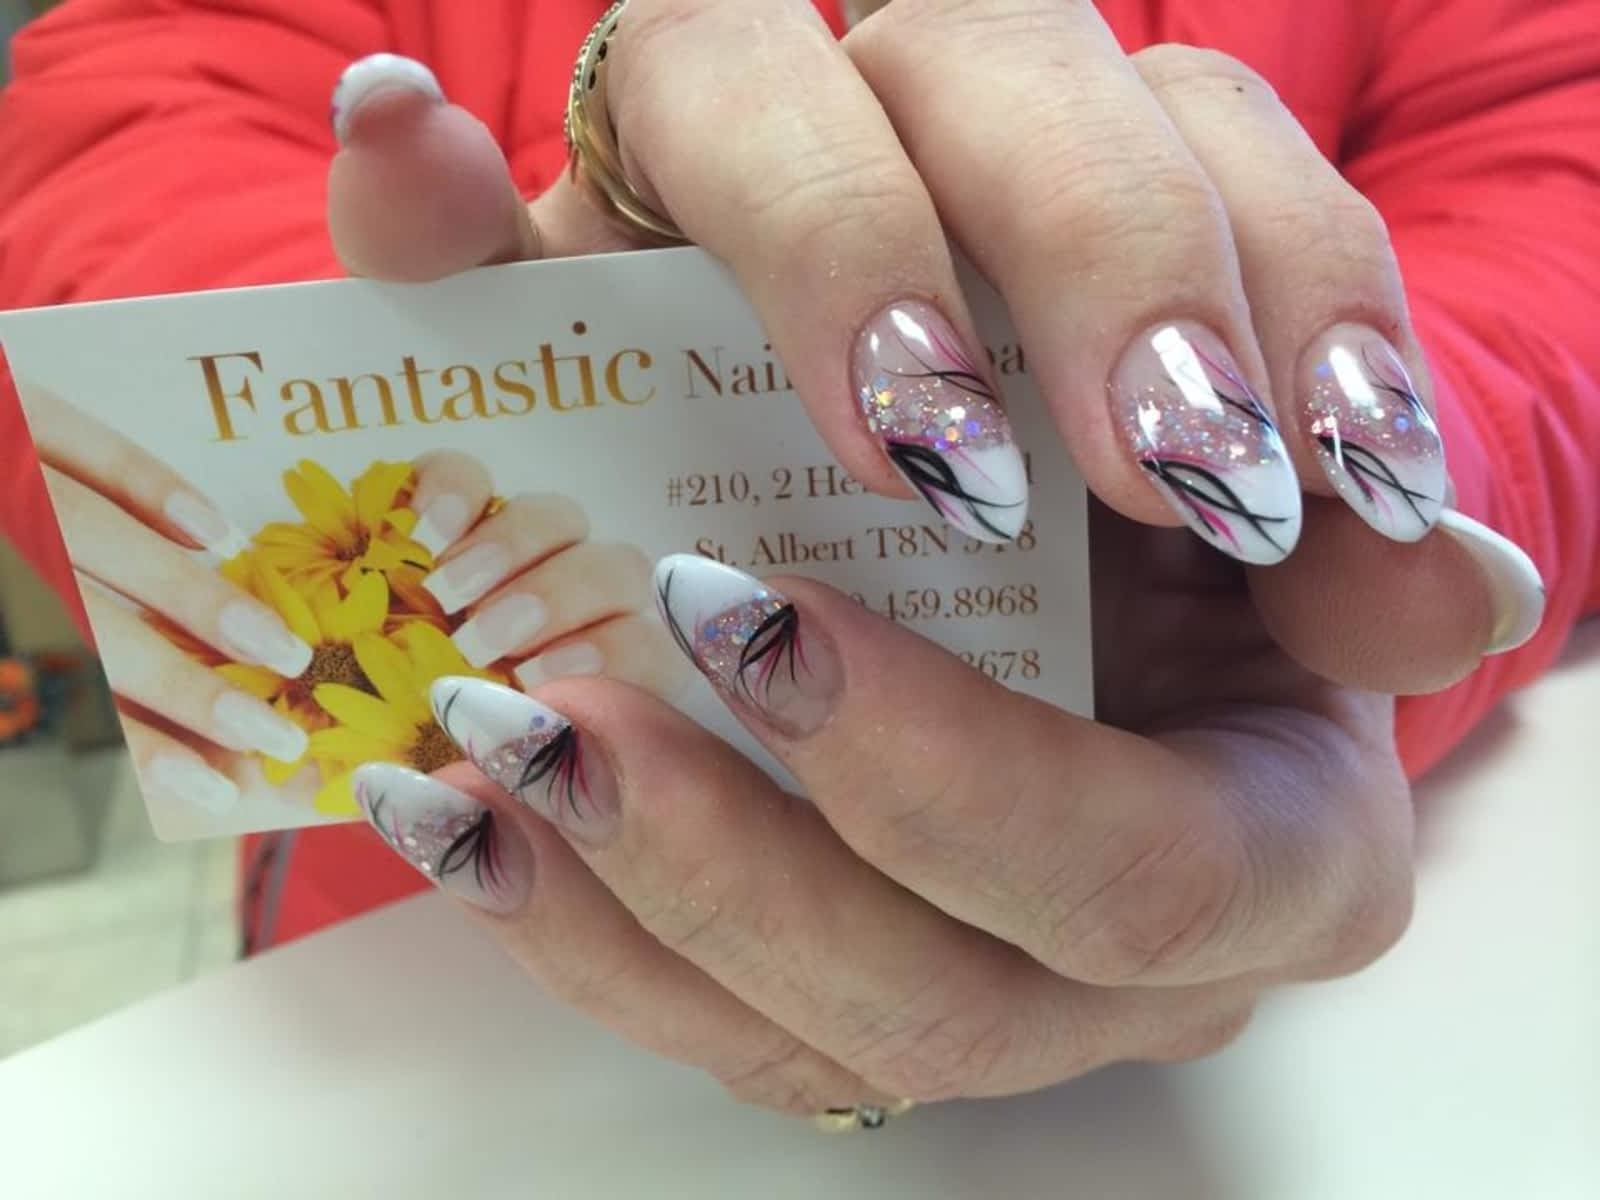 Fantastic Nails & Spa - Opening Hours - 210-2 Hebert Rd, St. Albert, AB